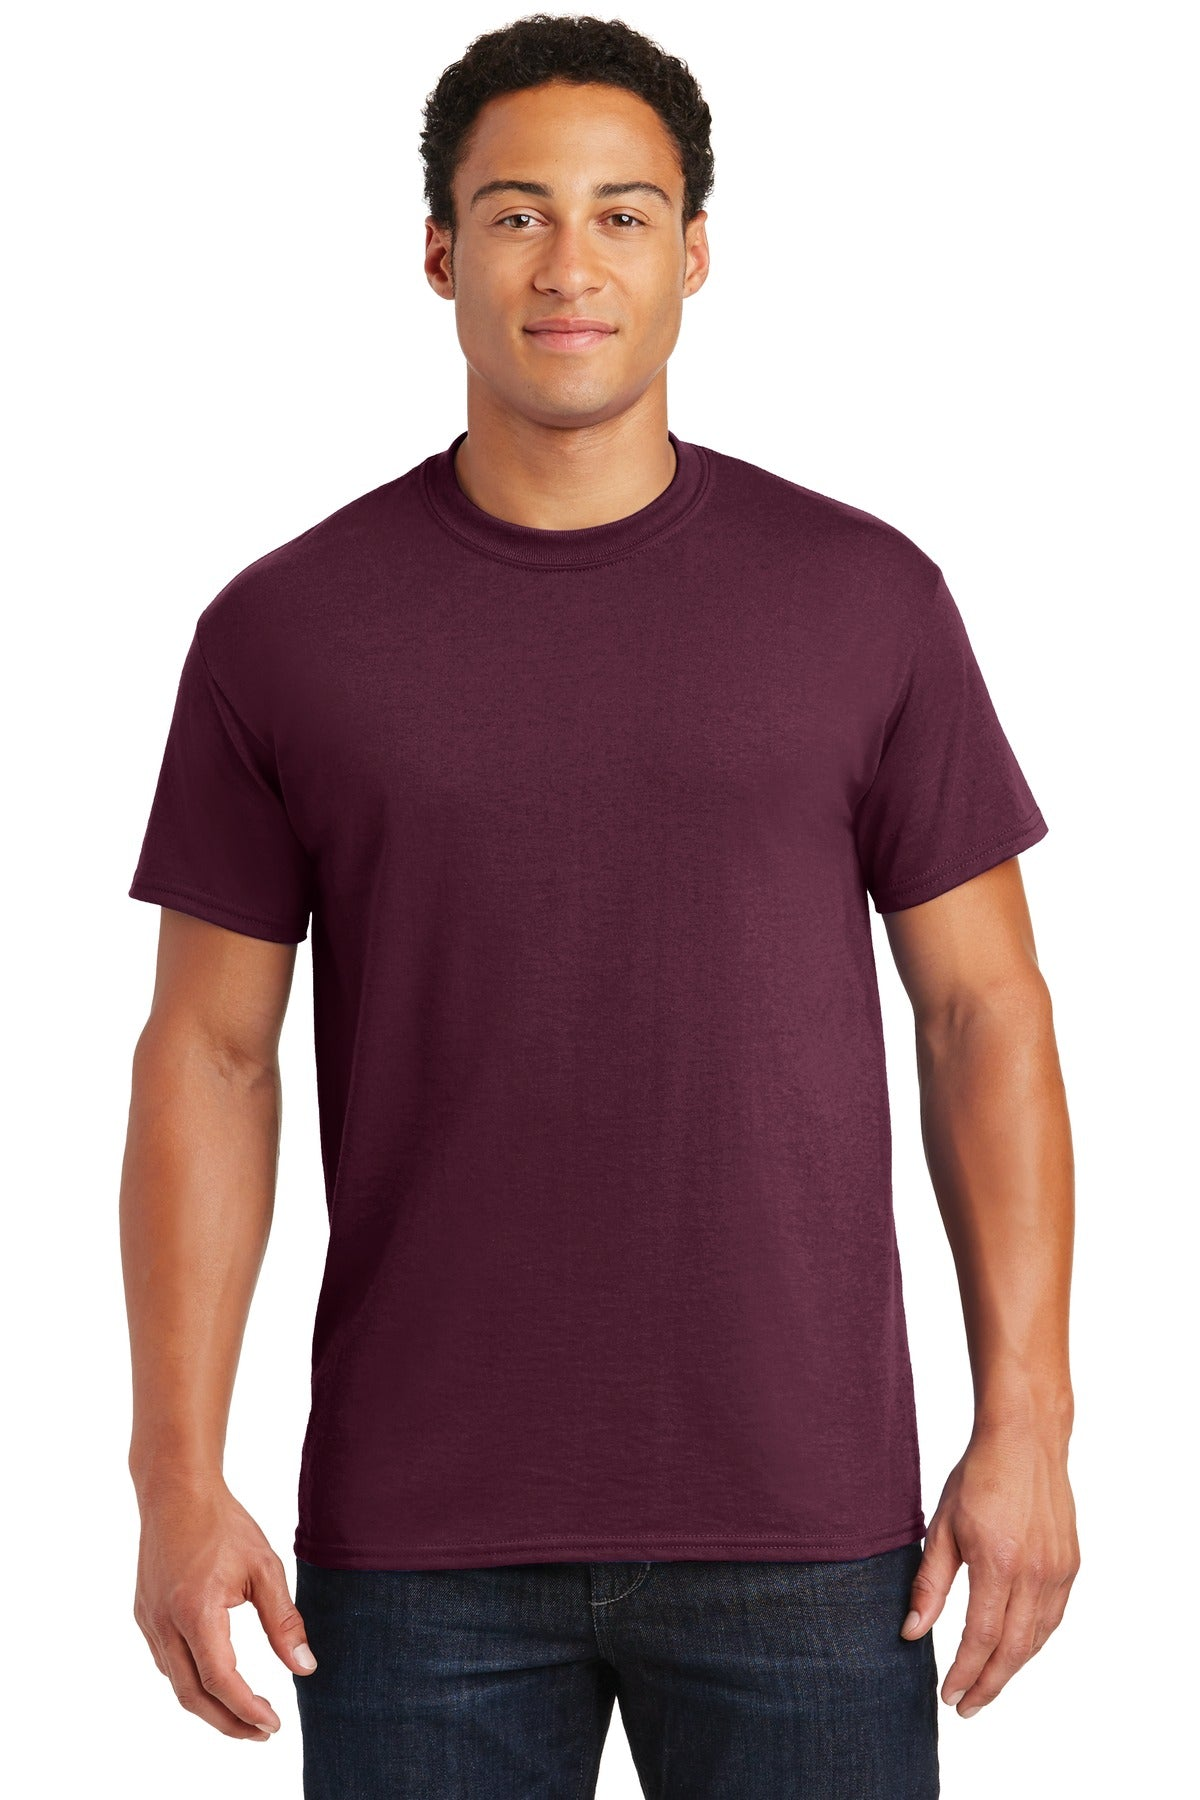 Maroon Gildan DryBlend 50 Cotton/50 Poly T-Shirt.